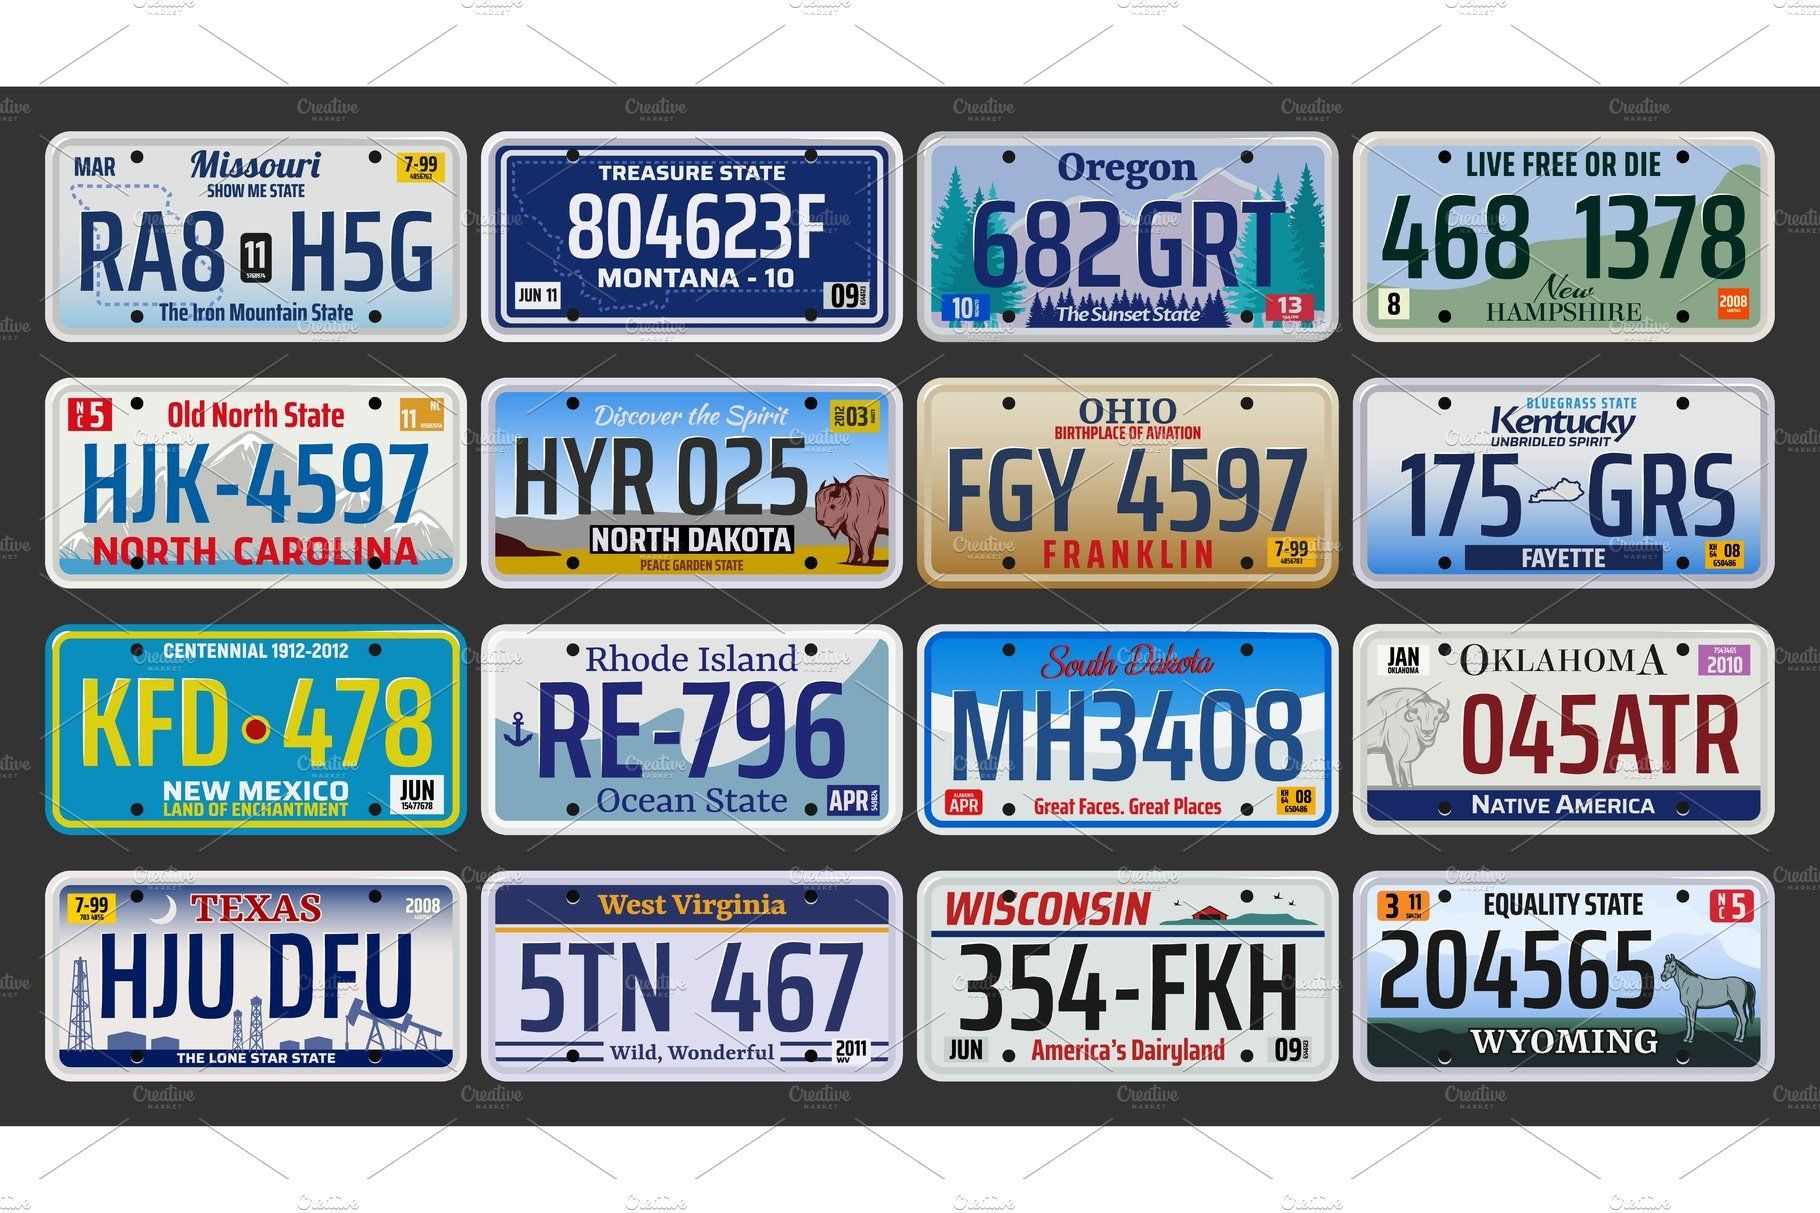 Car Number Plates In Usa In 2020 Car Number Plates Car License